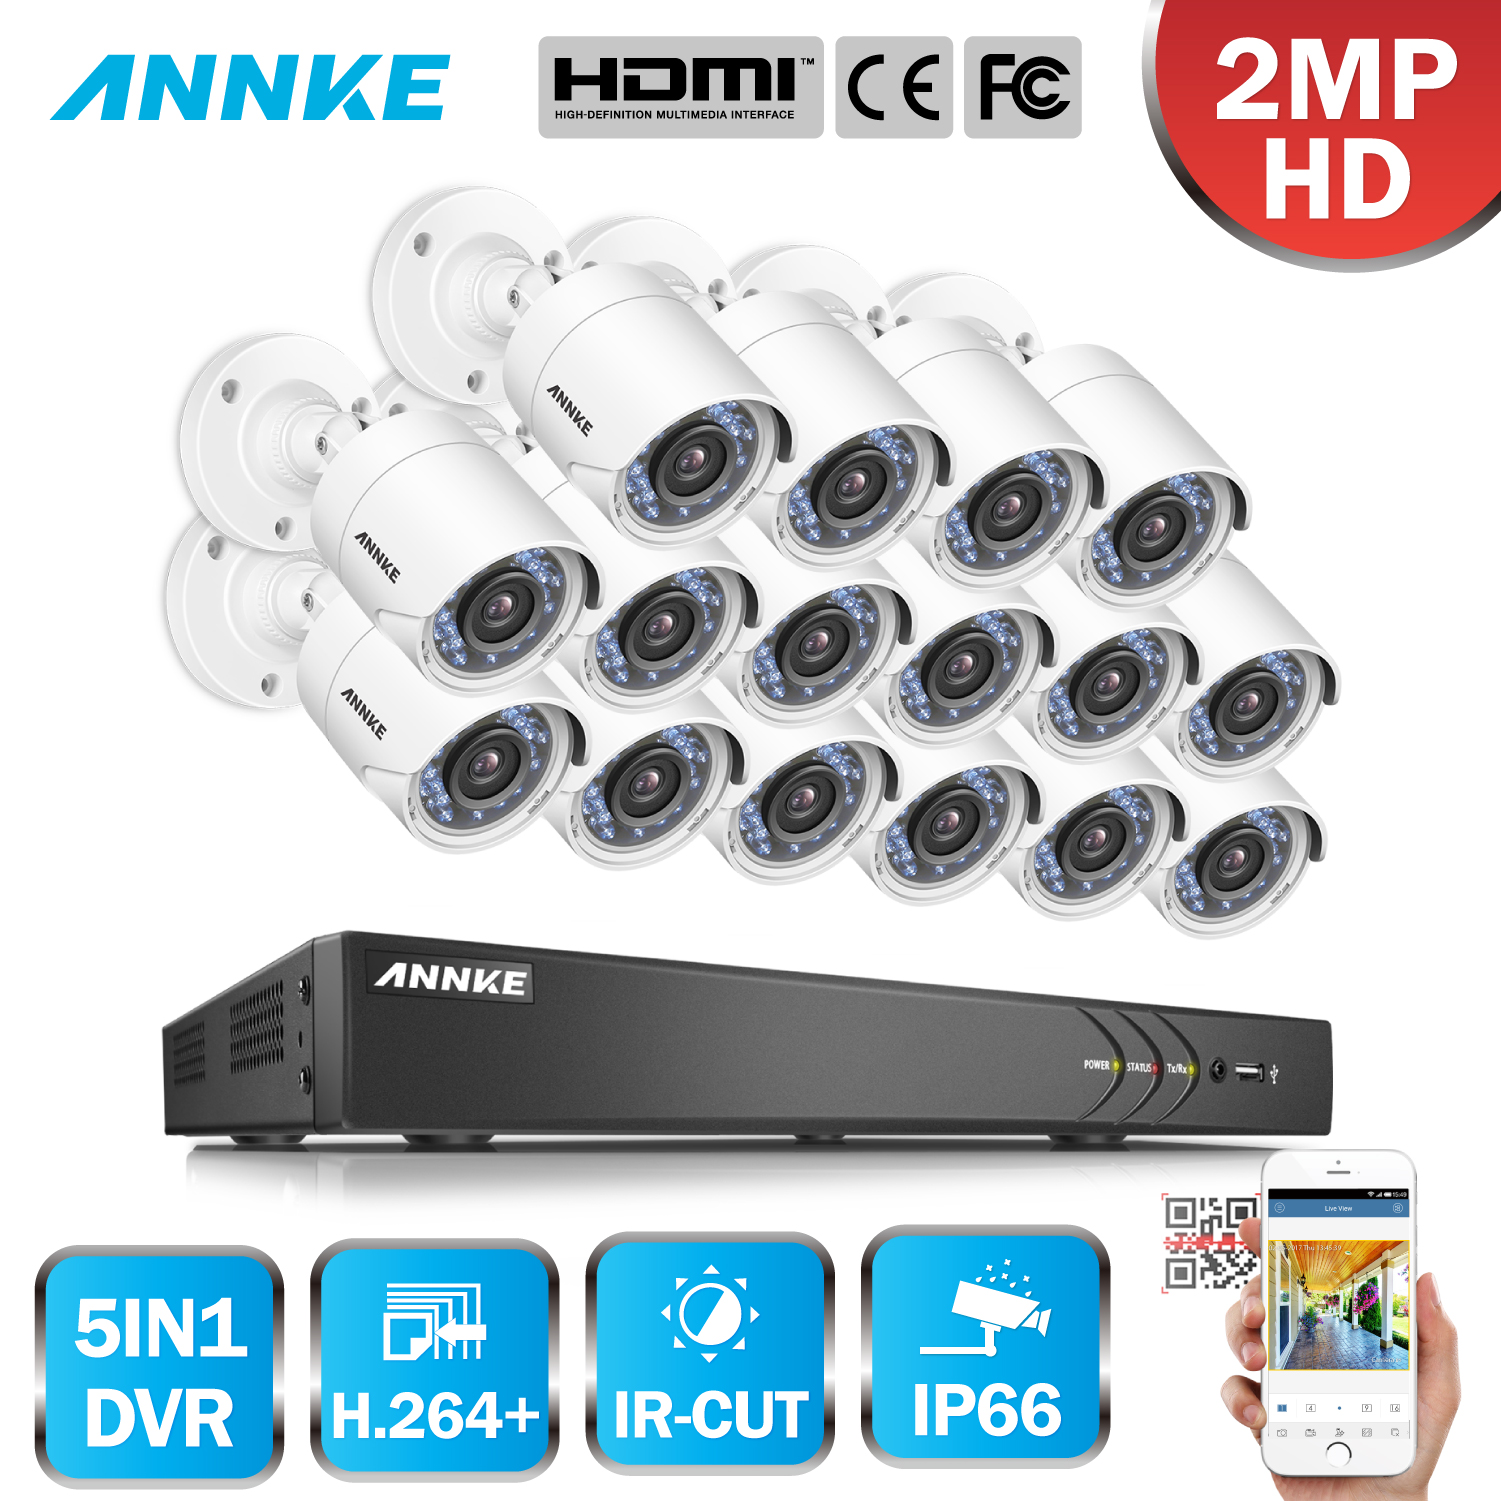 ANNKE 1080P Security Surveillance System 5in1 16CH HD 3MP DVR 16pcs 2MP HD Smart IR Day Night Vision Weatherproof CCTV Camera 2mp ip camera 1080p hd cctv outdoors ir weatherproof day